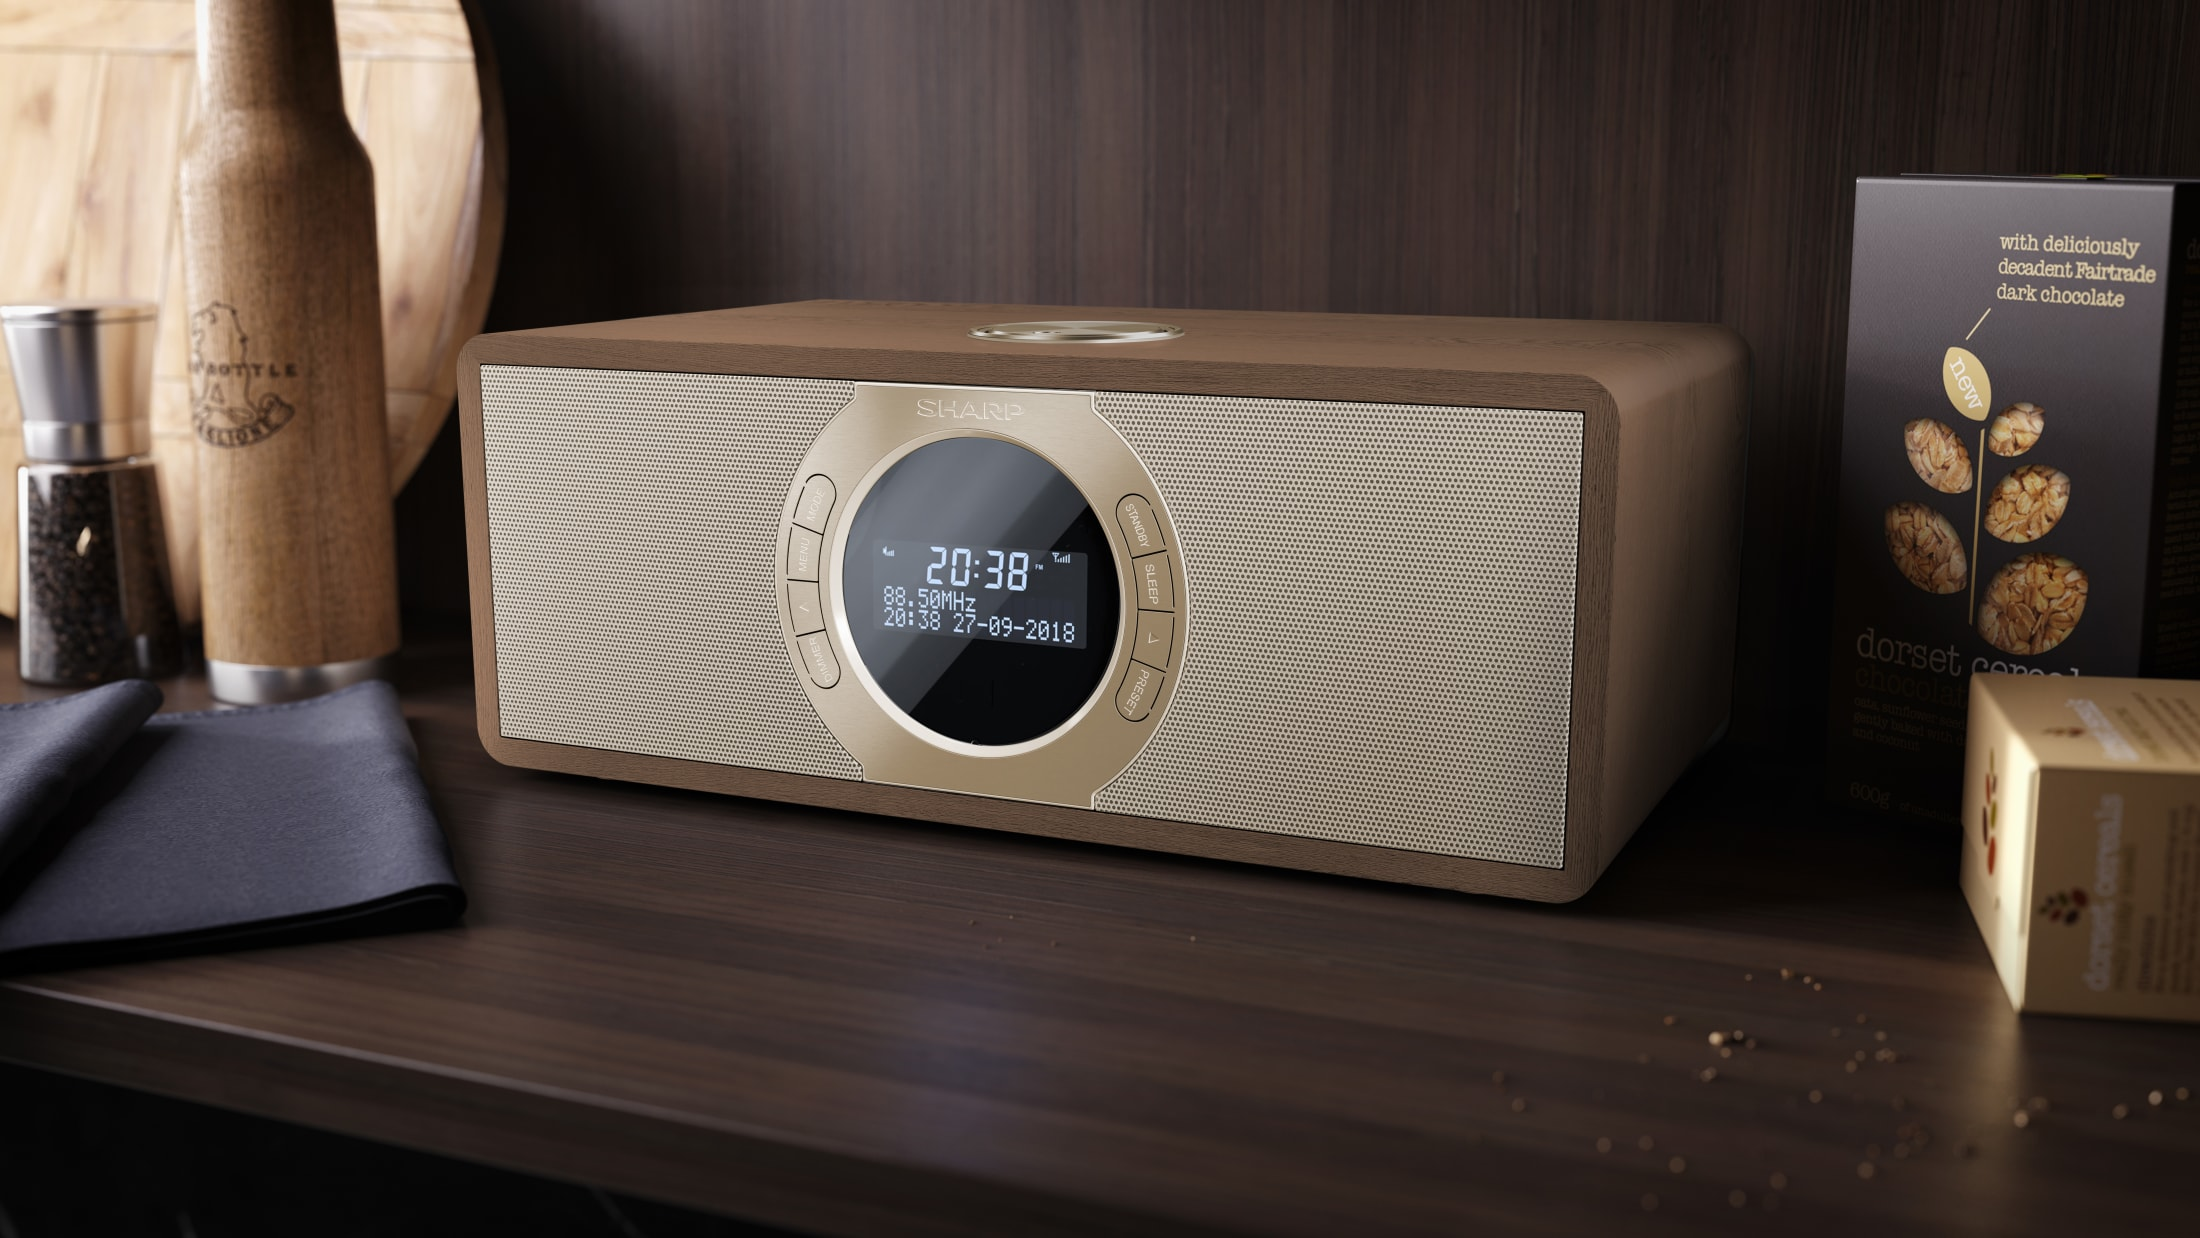 Stereo Digitalradio DAB/DAB+/FM with RDS, 30 W, Bluetooth 4.2 and 60 station memory.